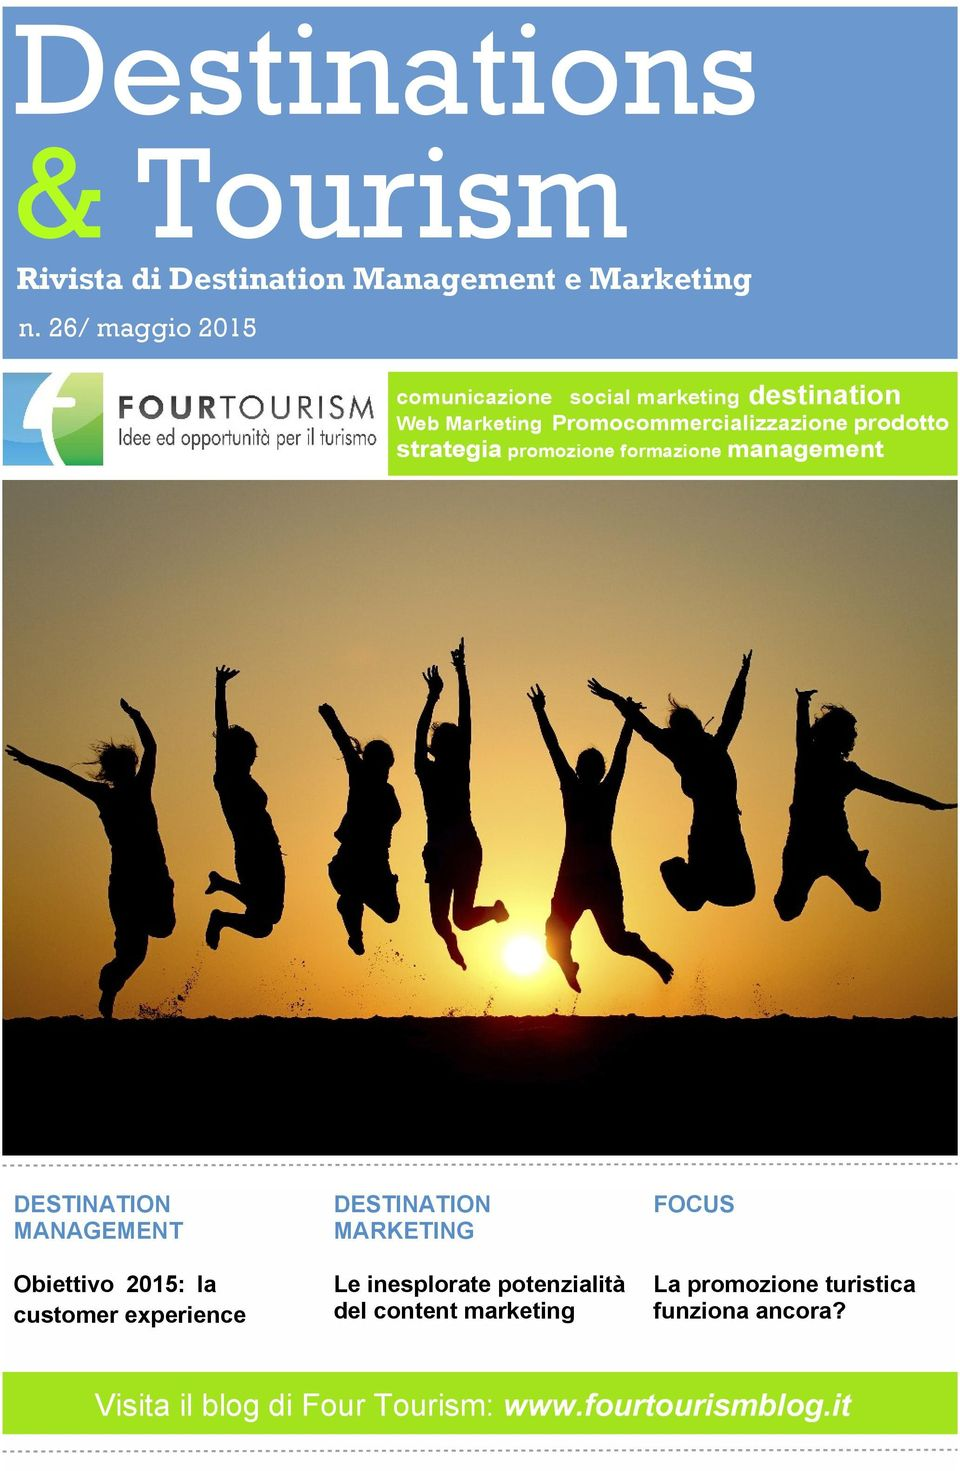 strategia promozione formazione management DESTINATION MANAGEMENT Obiettivo 2015: la customer experience